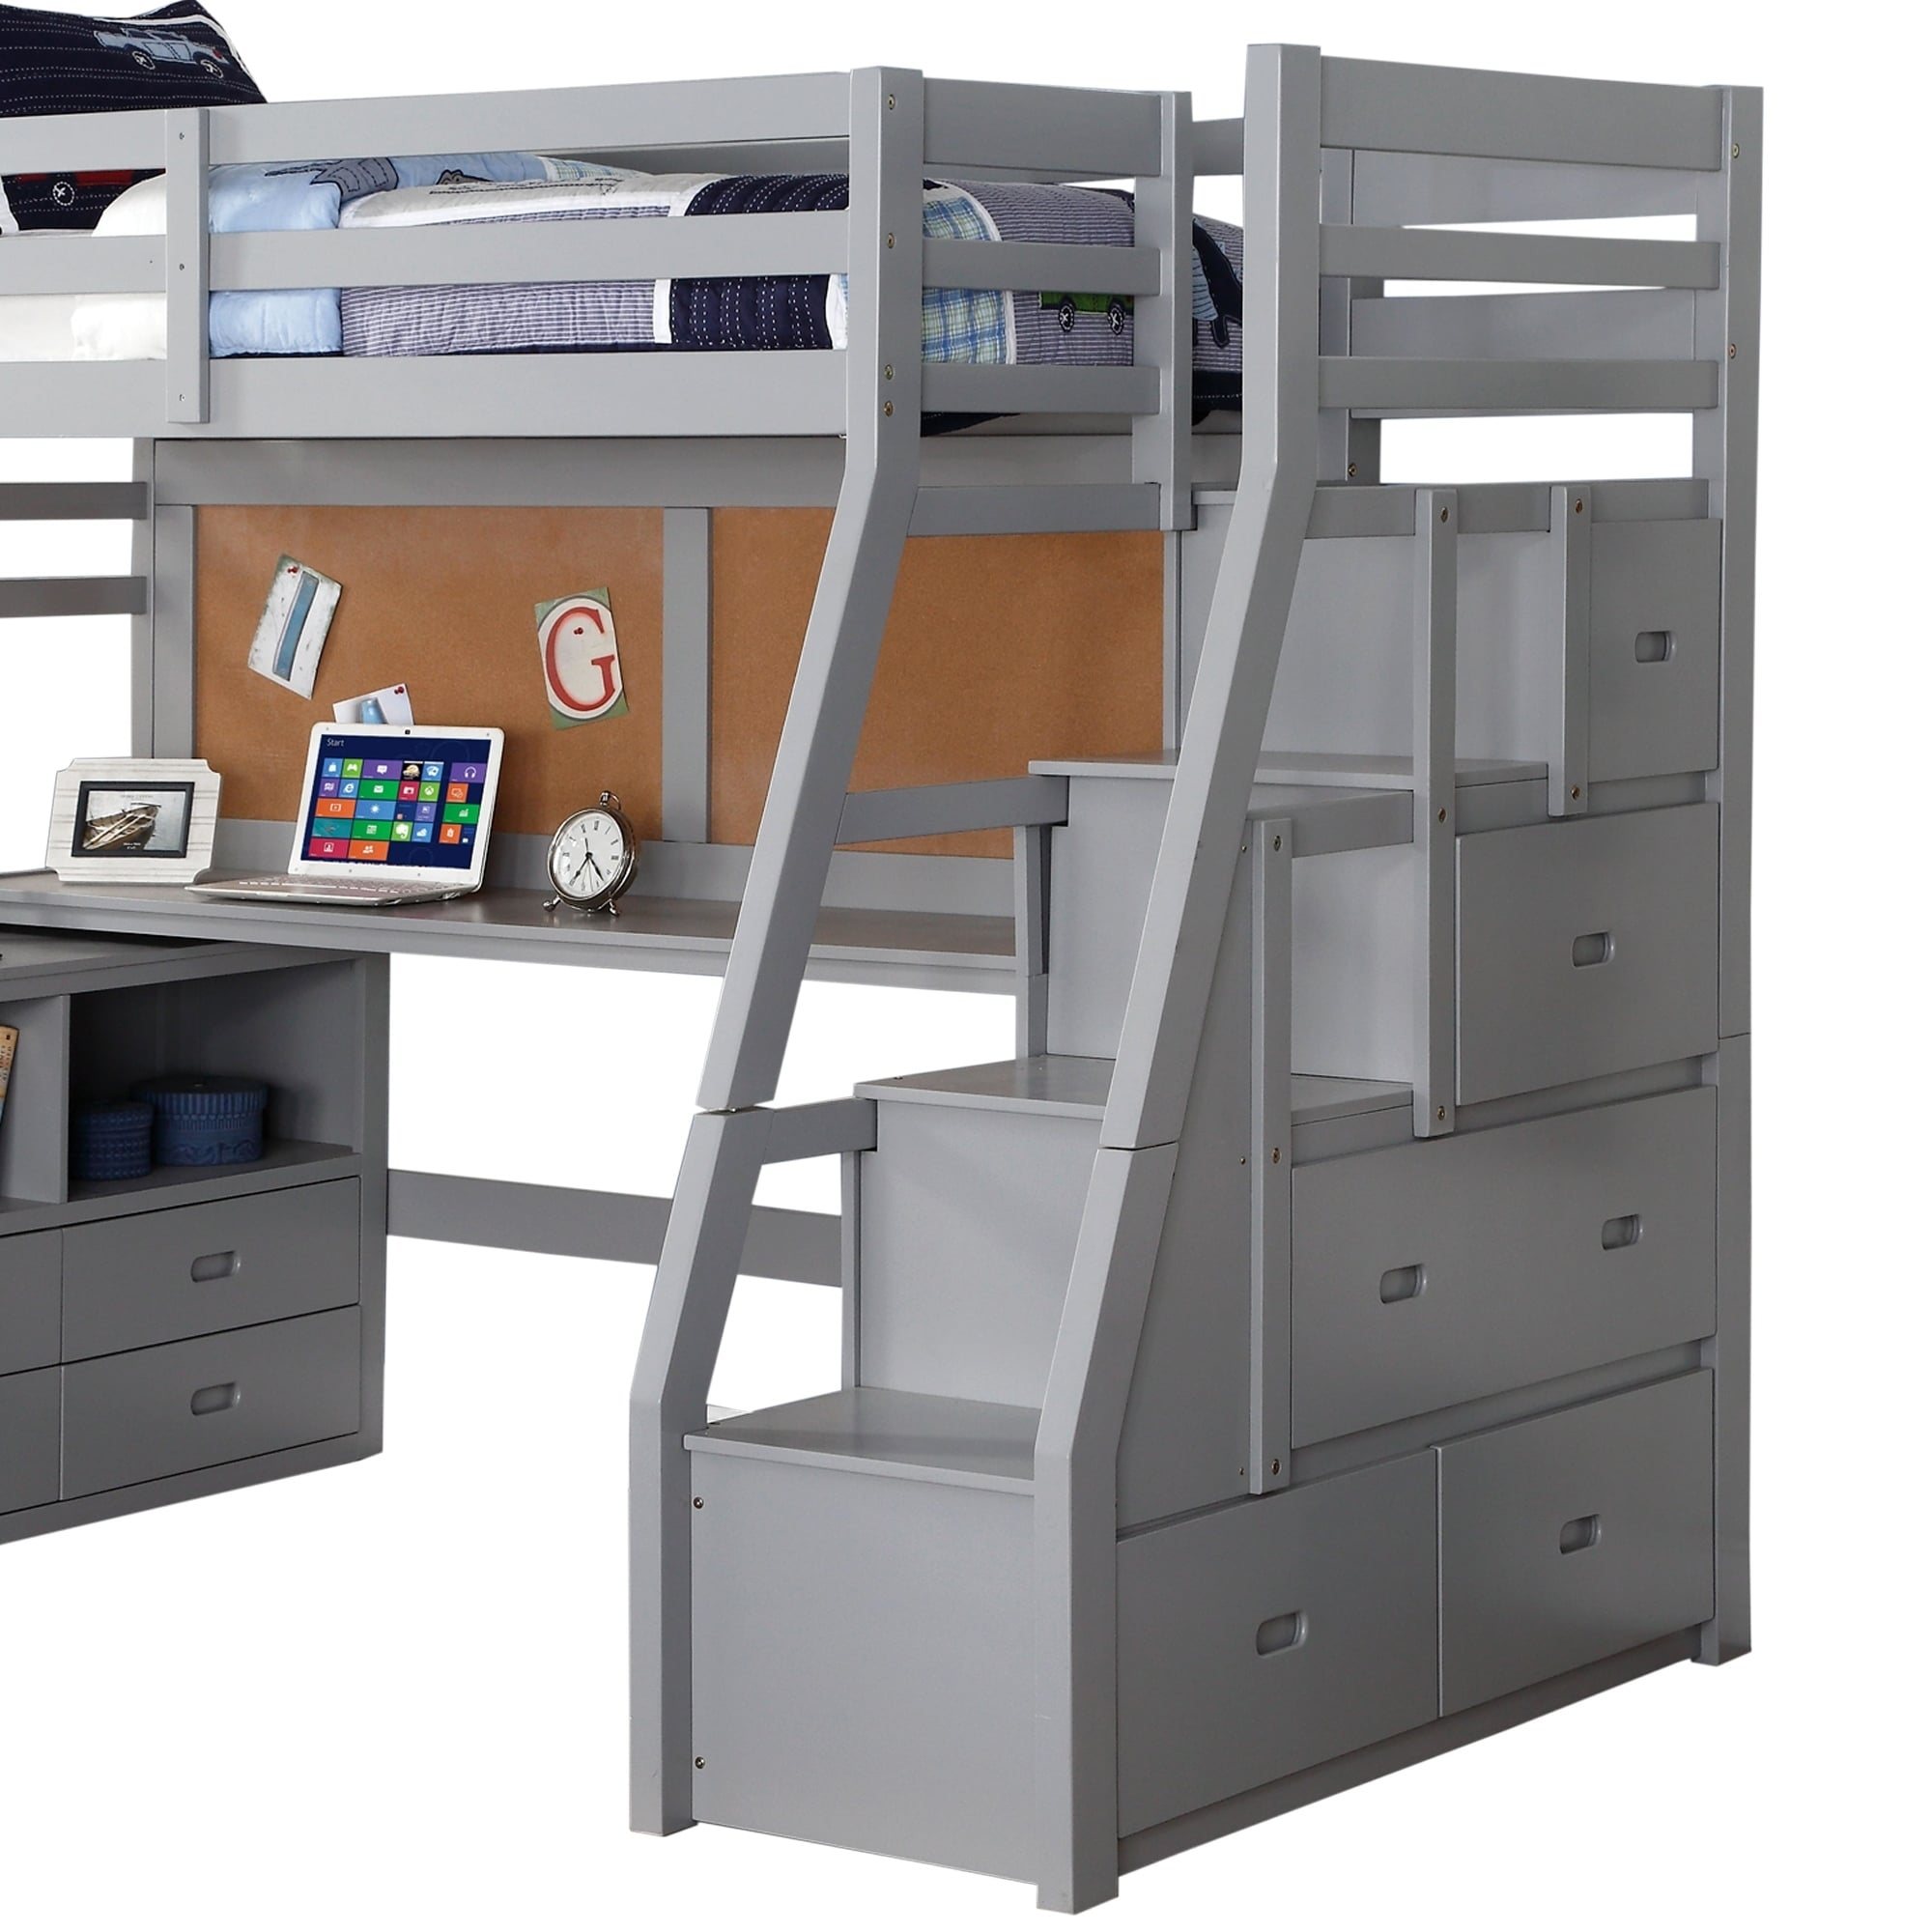 Shop Black Friday Deals On Modern Wooden Twin Size Loft Bed With Desk And Storage Chest Gray On Sale Overstock 29714176